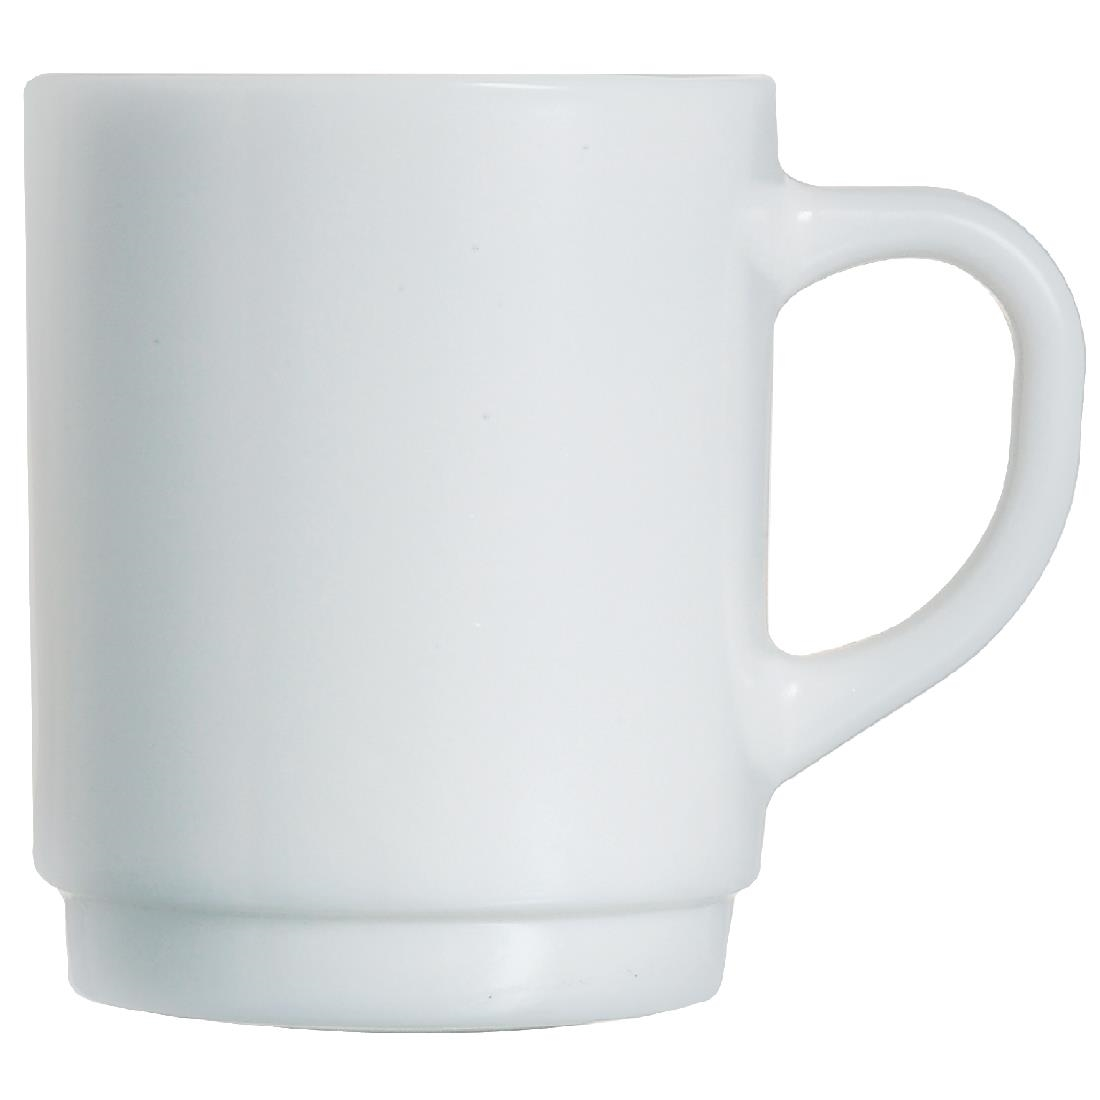 Image of Arcoroc Opal Stackable Mugs 290ml (Pack of 6) Pack of 6